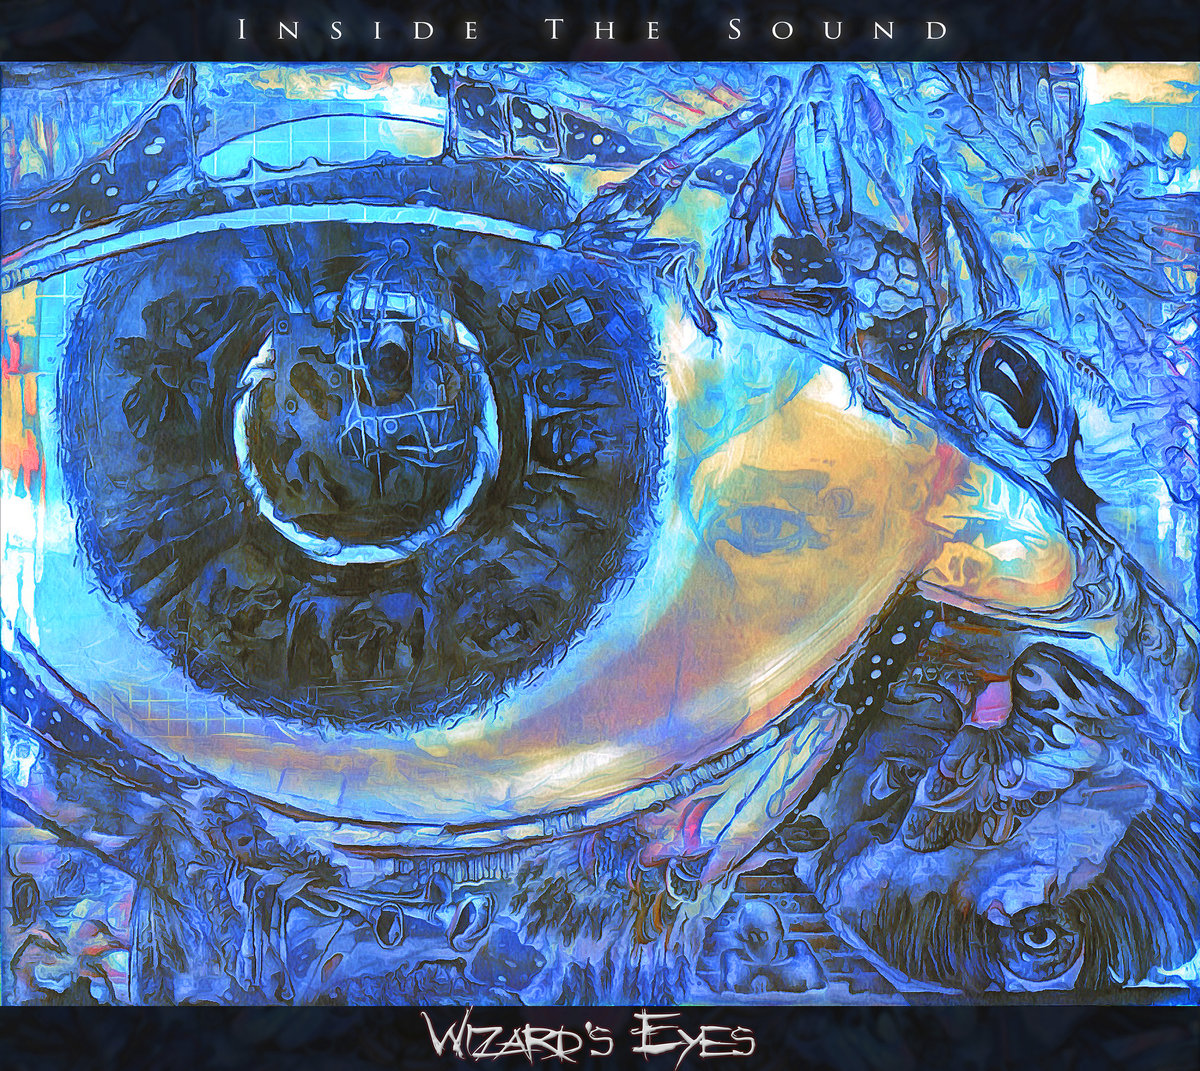 wizards-eyes-by-inside-the-sound